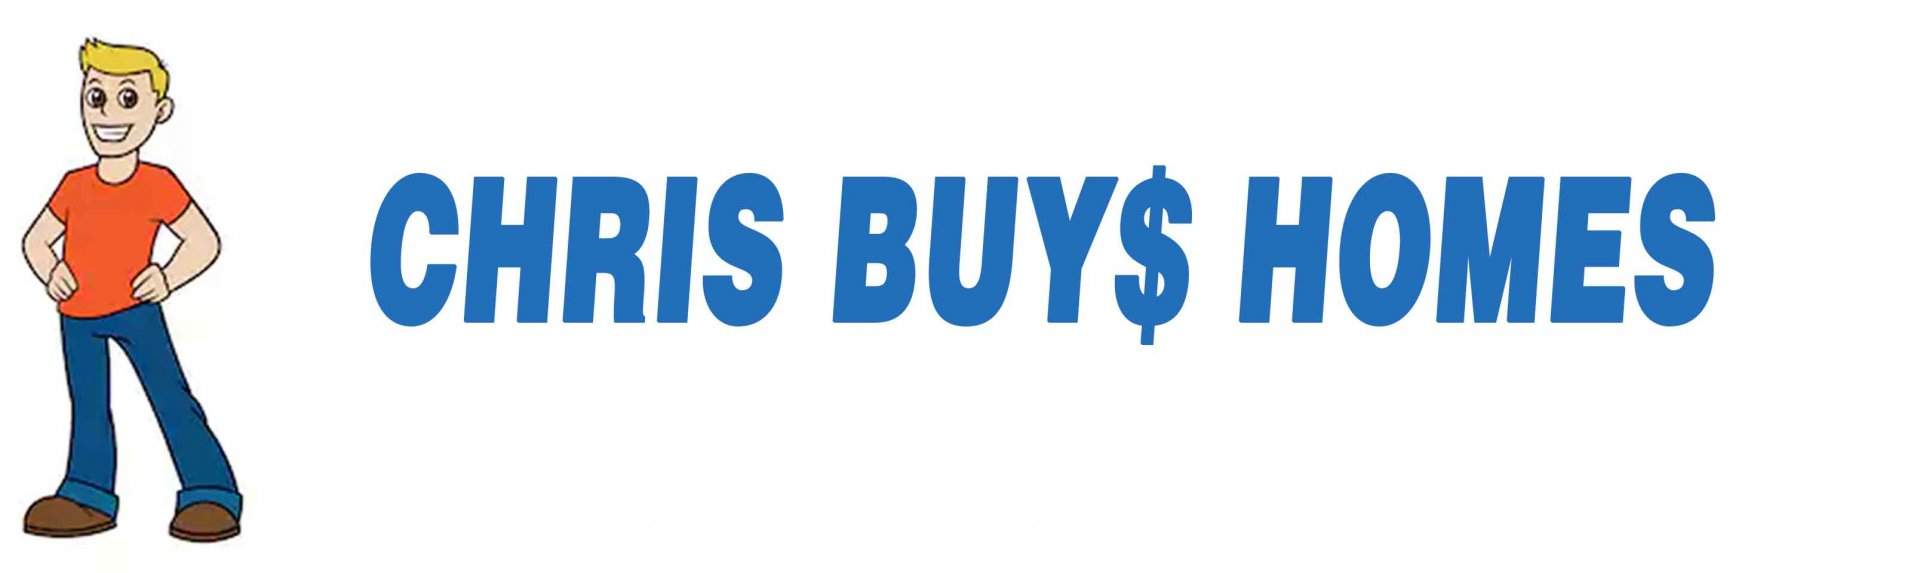 Chris Buys Homes  logo